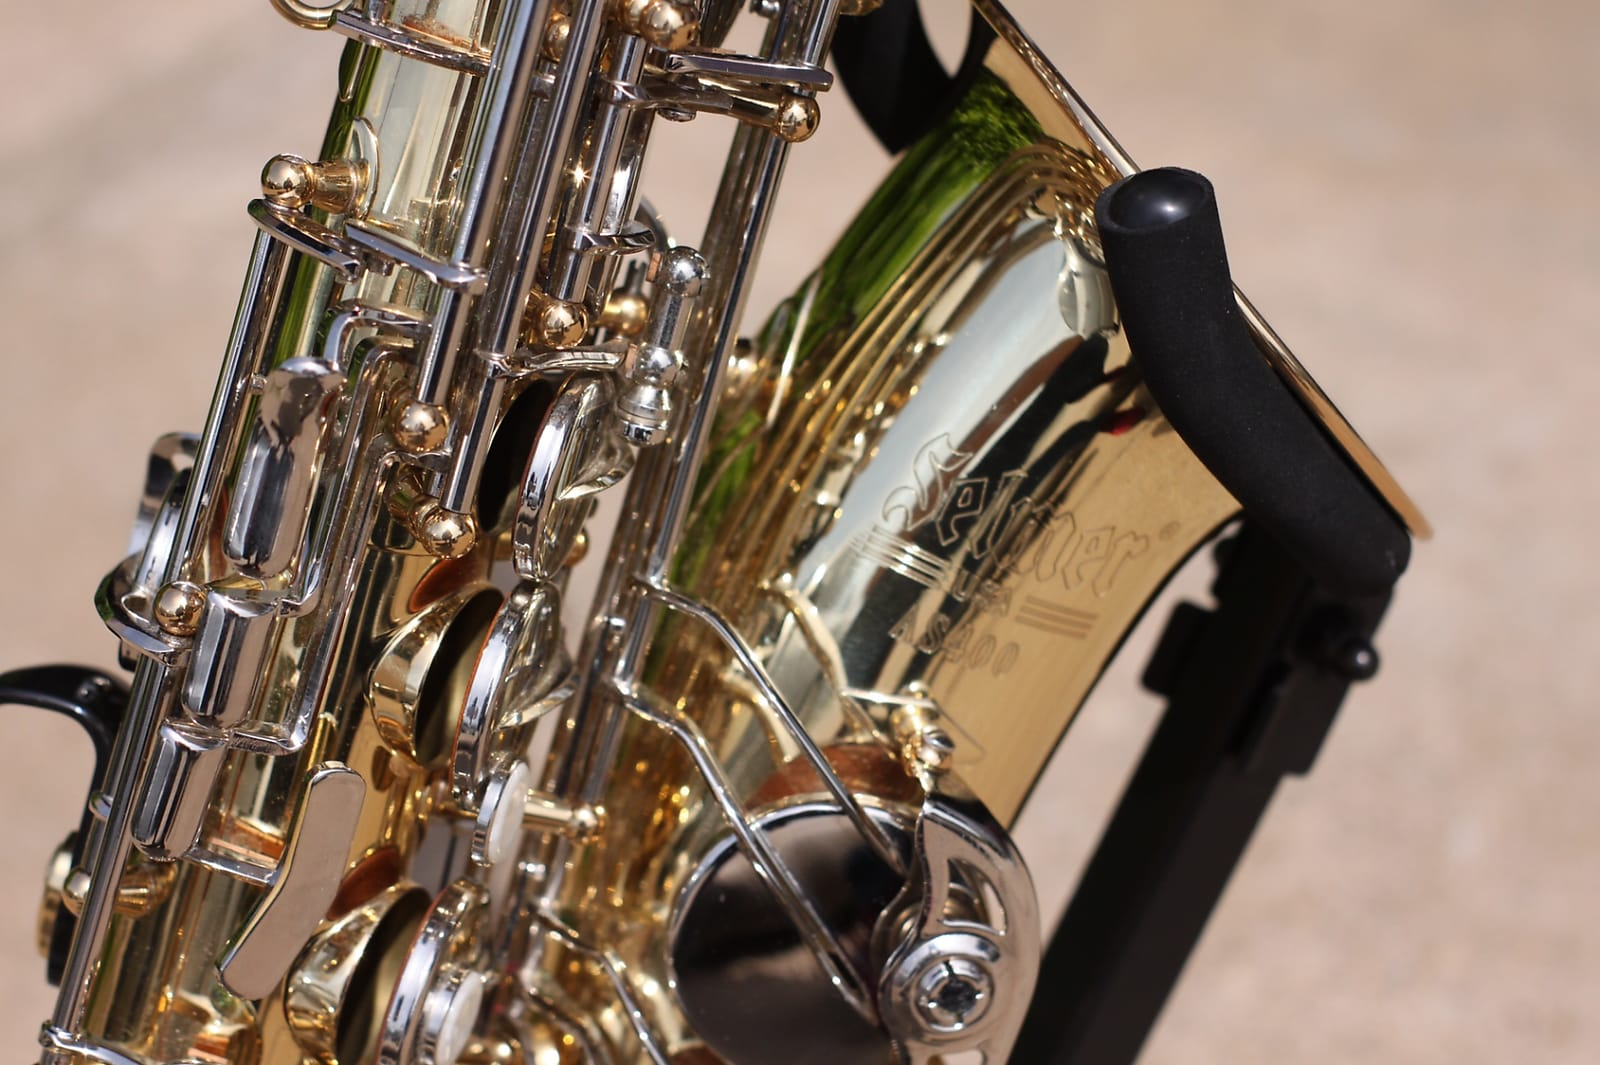 Used Selmer - AS400 Alto Saxophone with Original Hardshell Case - Free  Shipping!